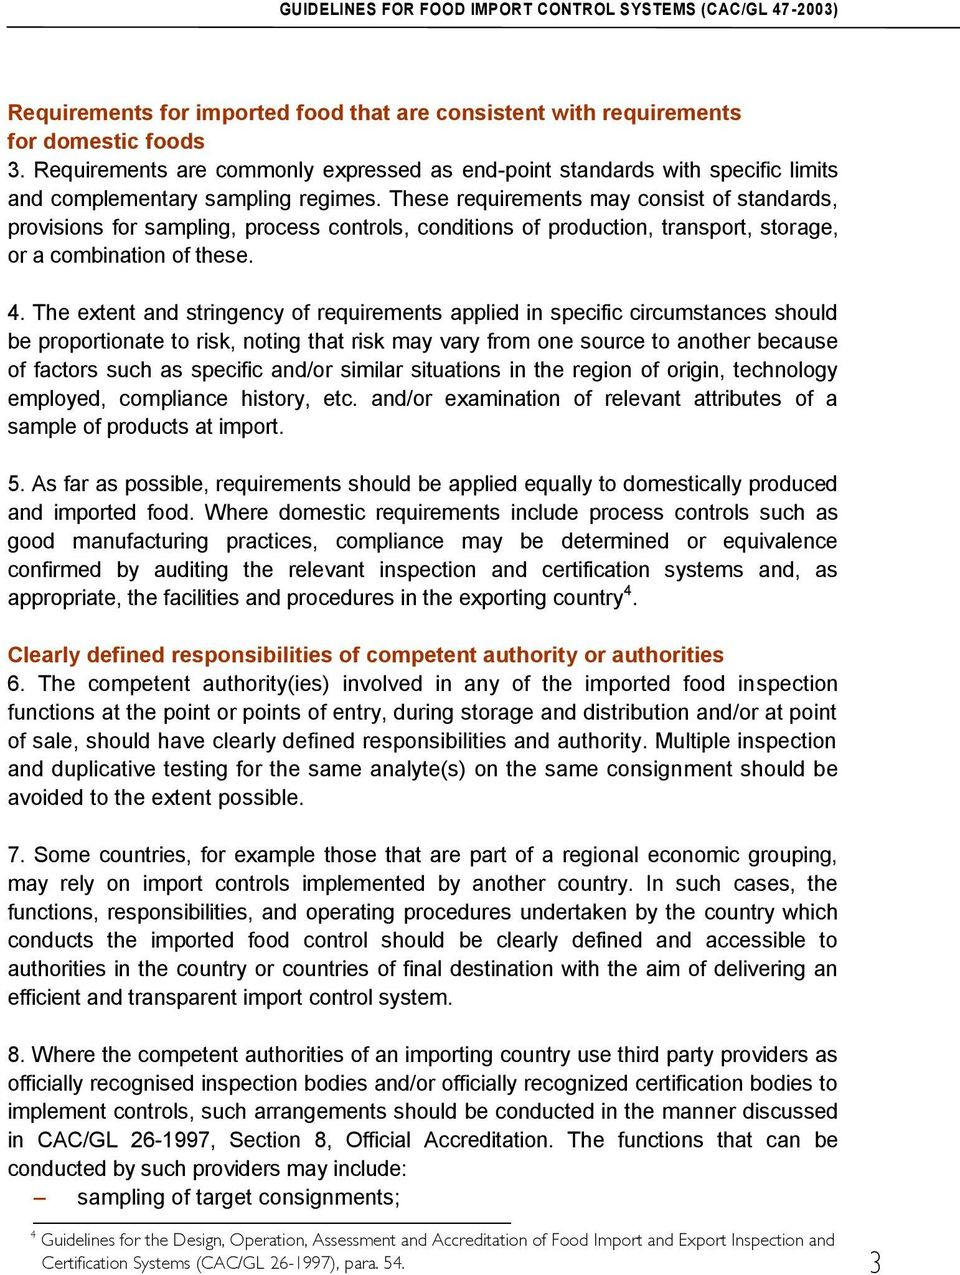 GUIDELINES FOR FOOD IMPORT CONTROL SYSTEMS - PDF